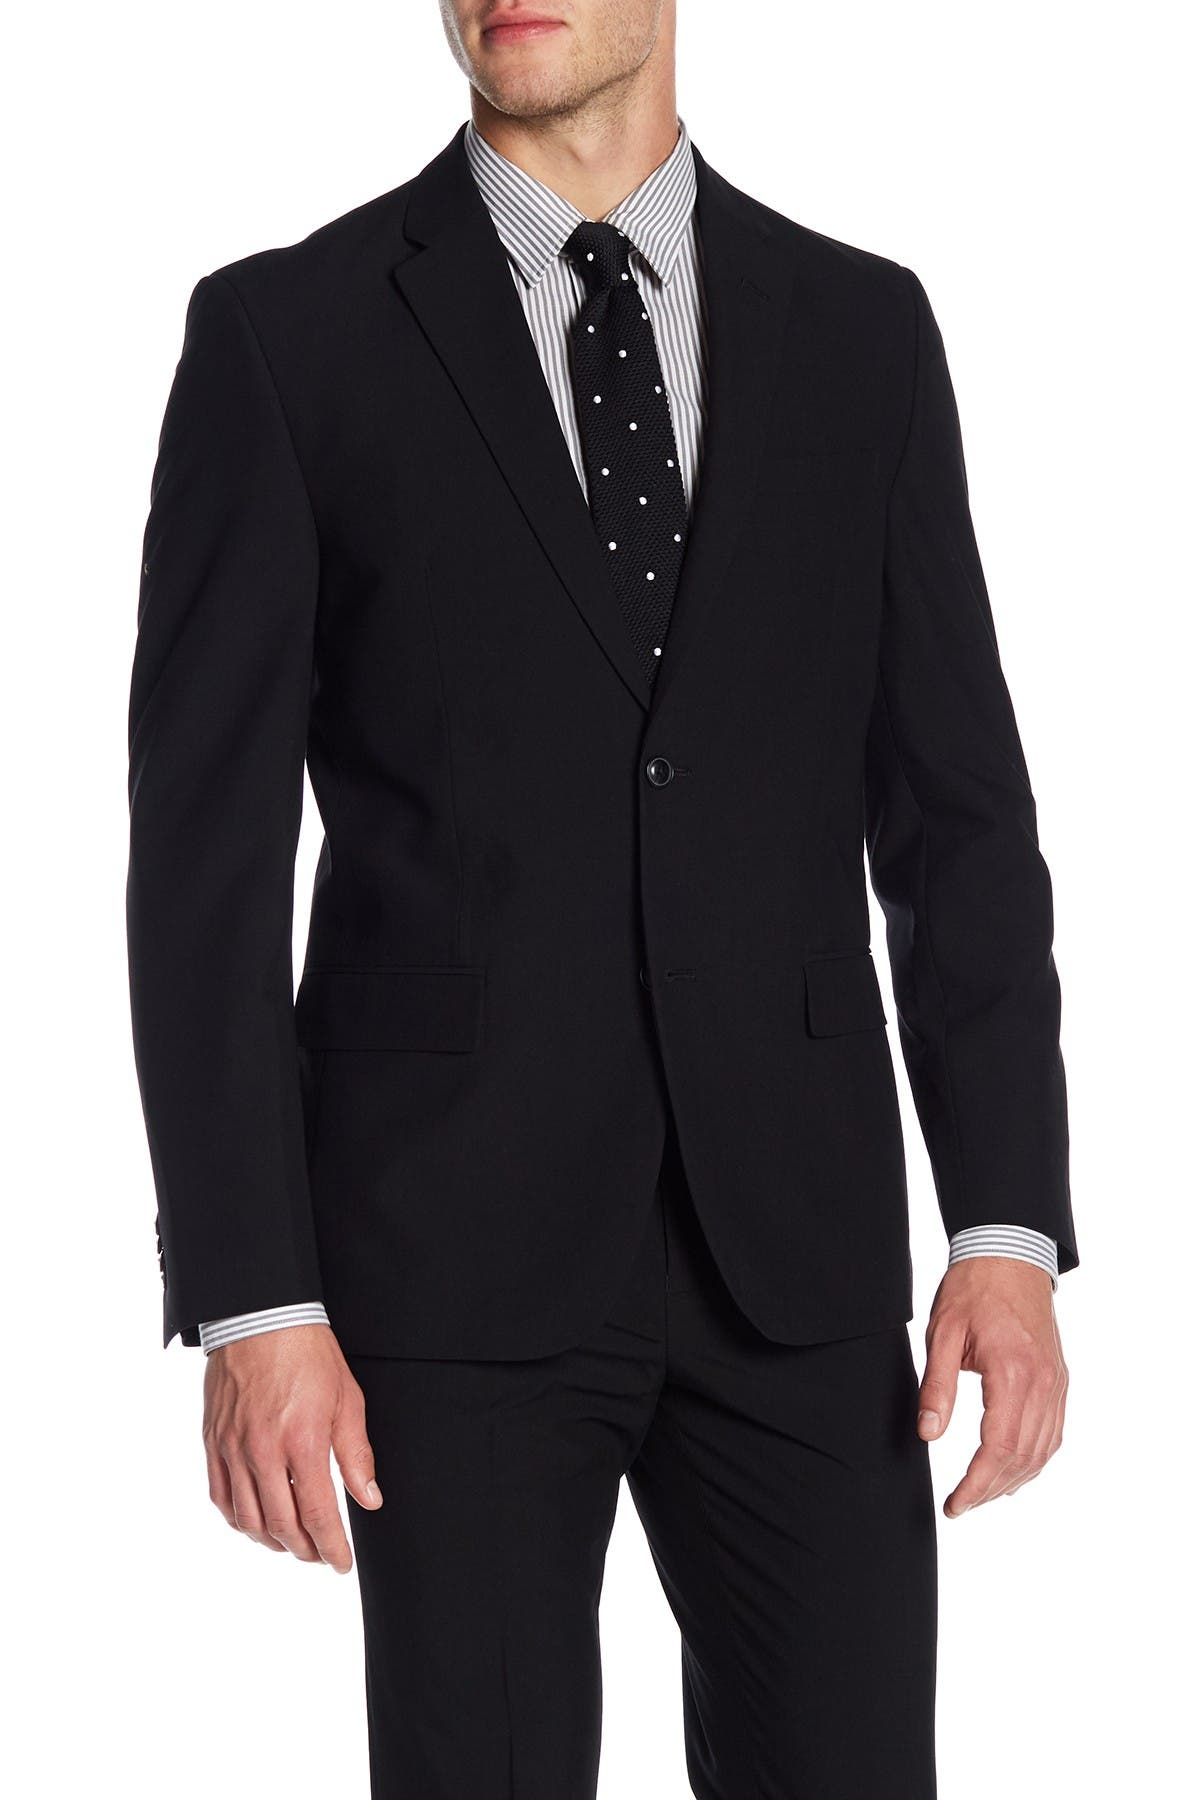 Image of Ben Sherman Solid Black Two Button Notch Lapel Suit Separates Jacket